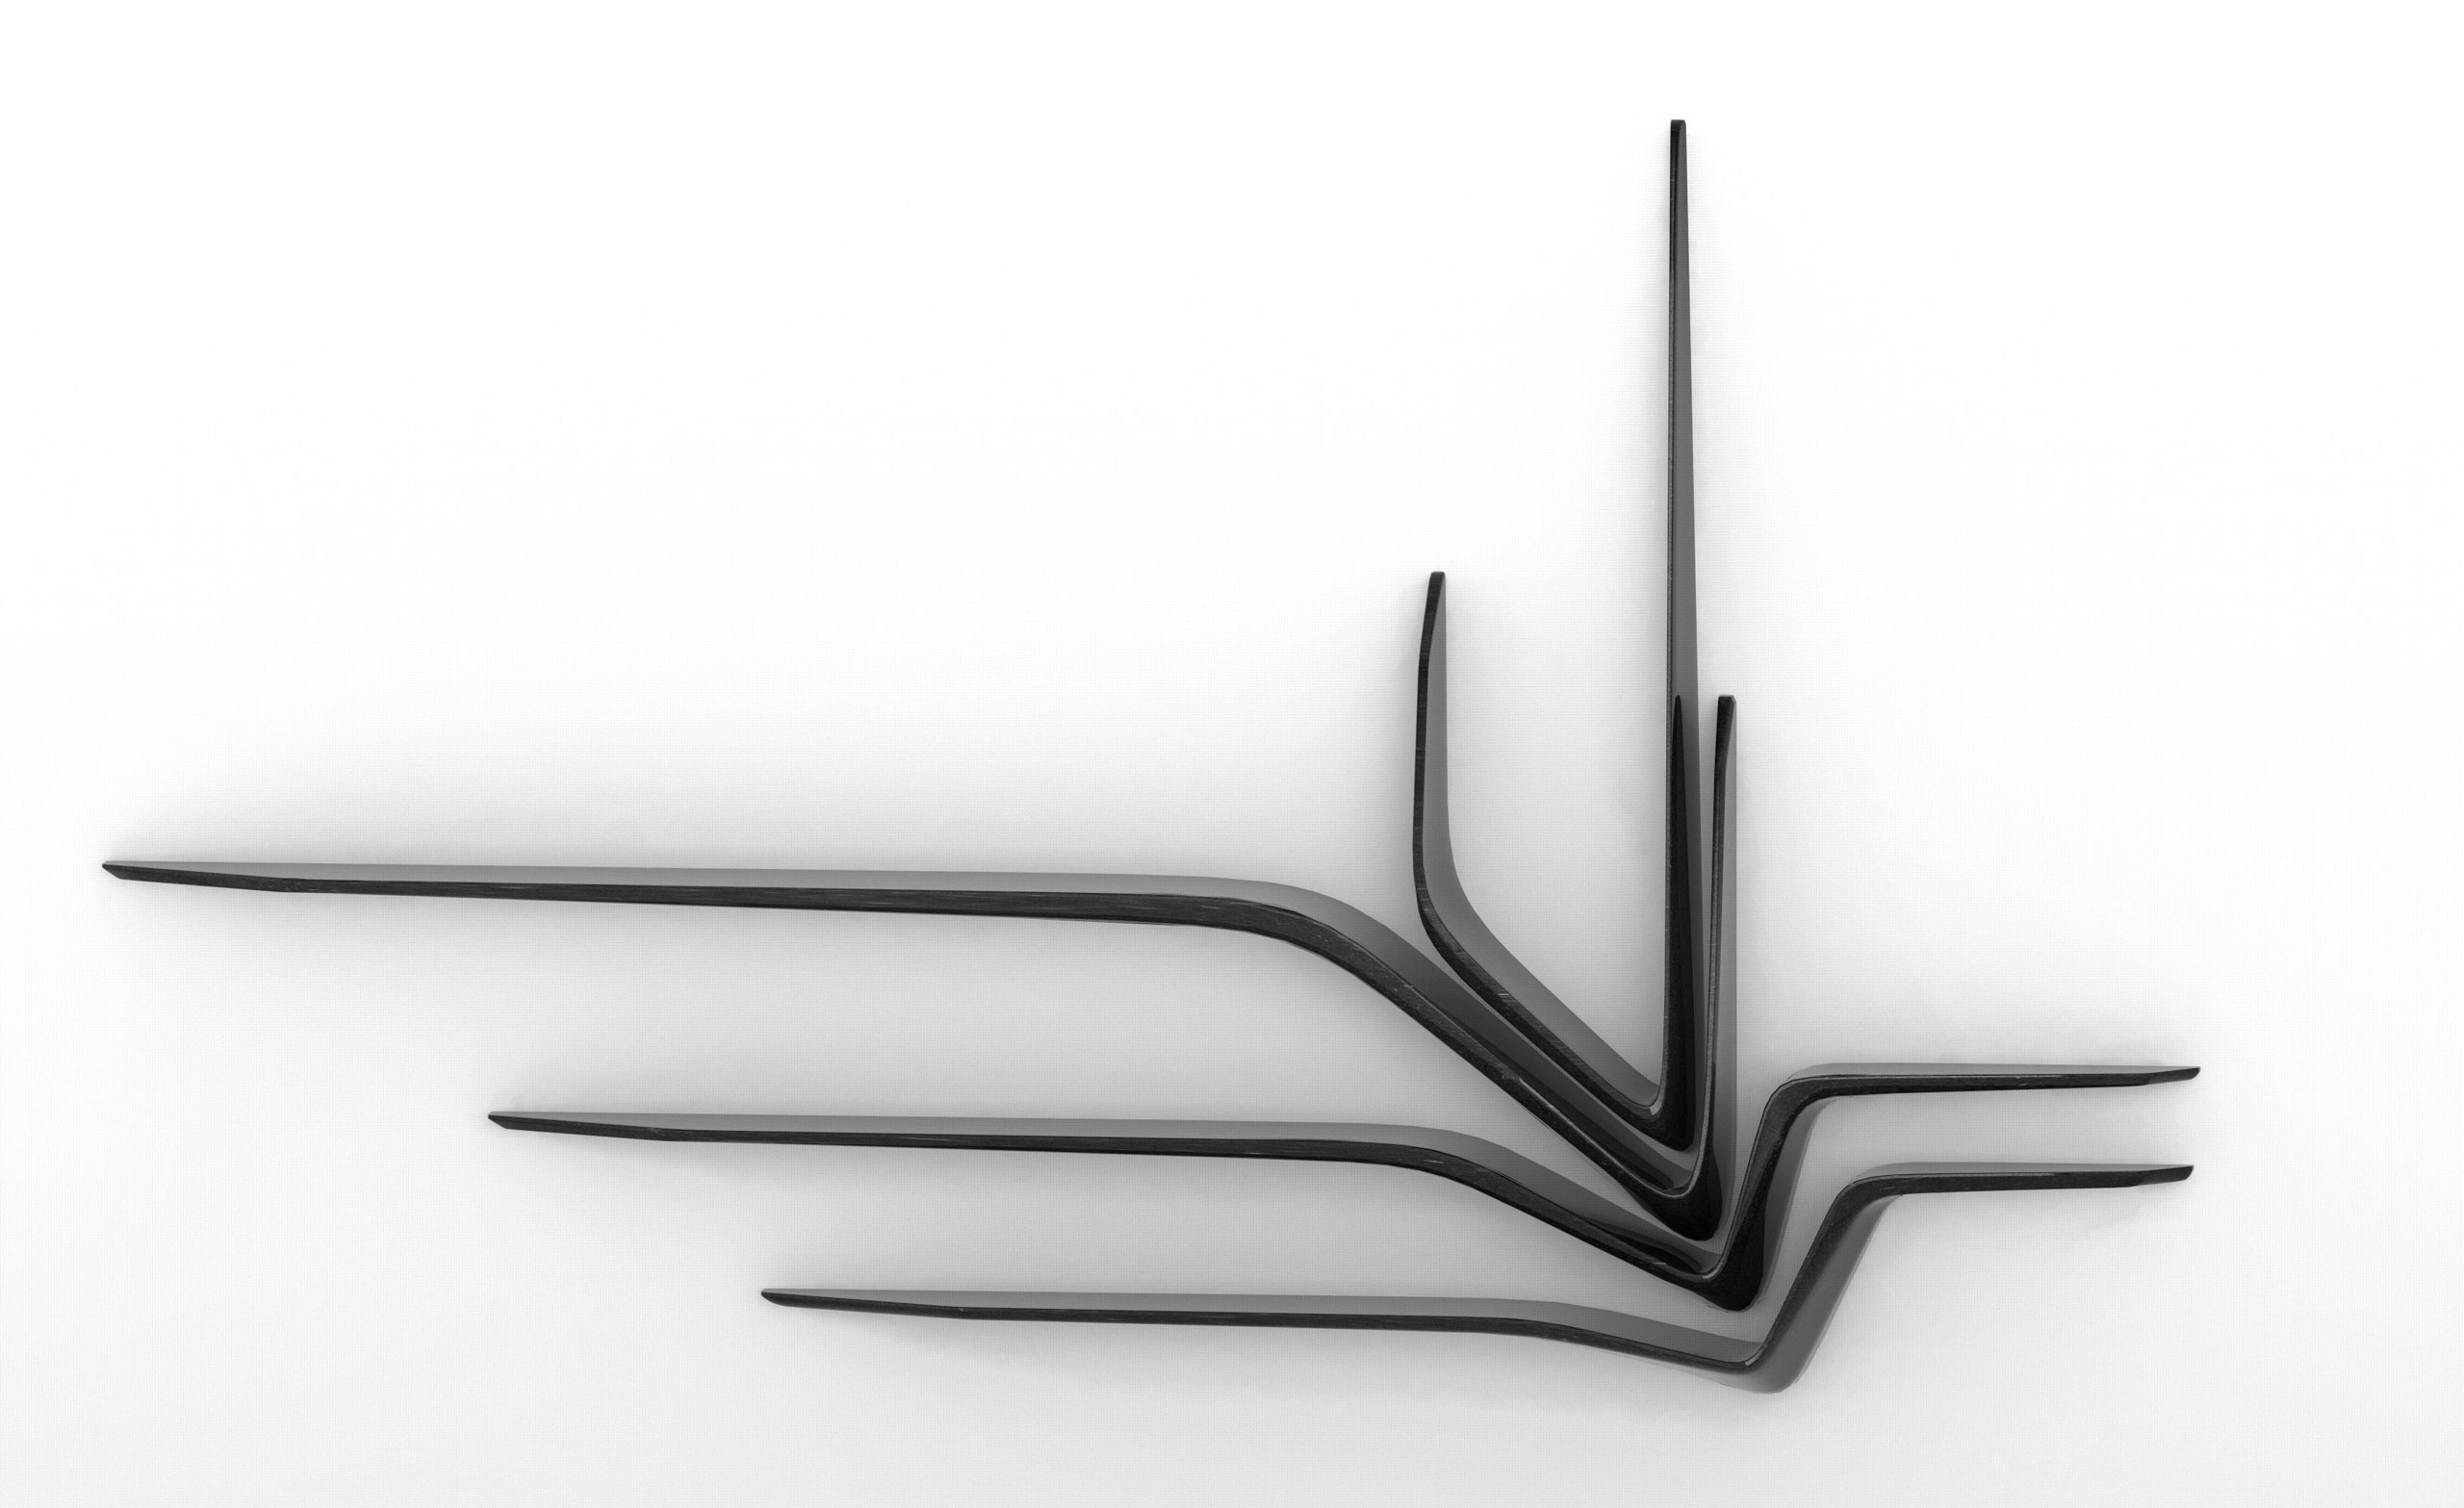 Shelving system by Zaha Hadid Architects for CITCO.